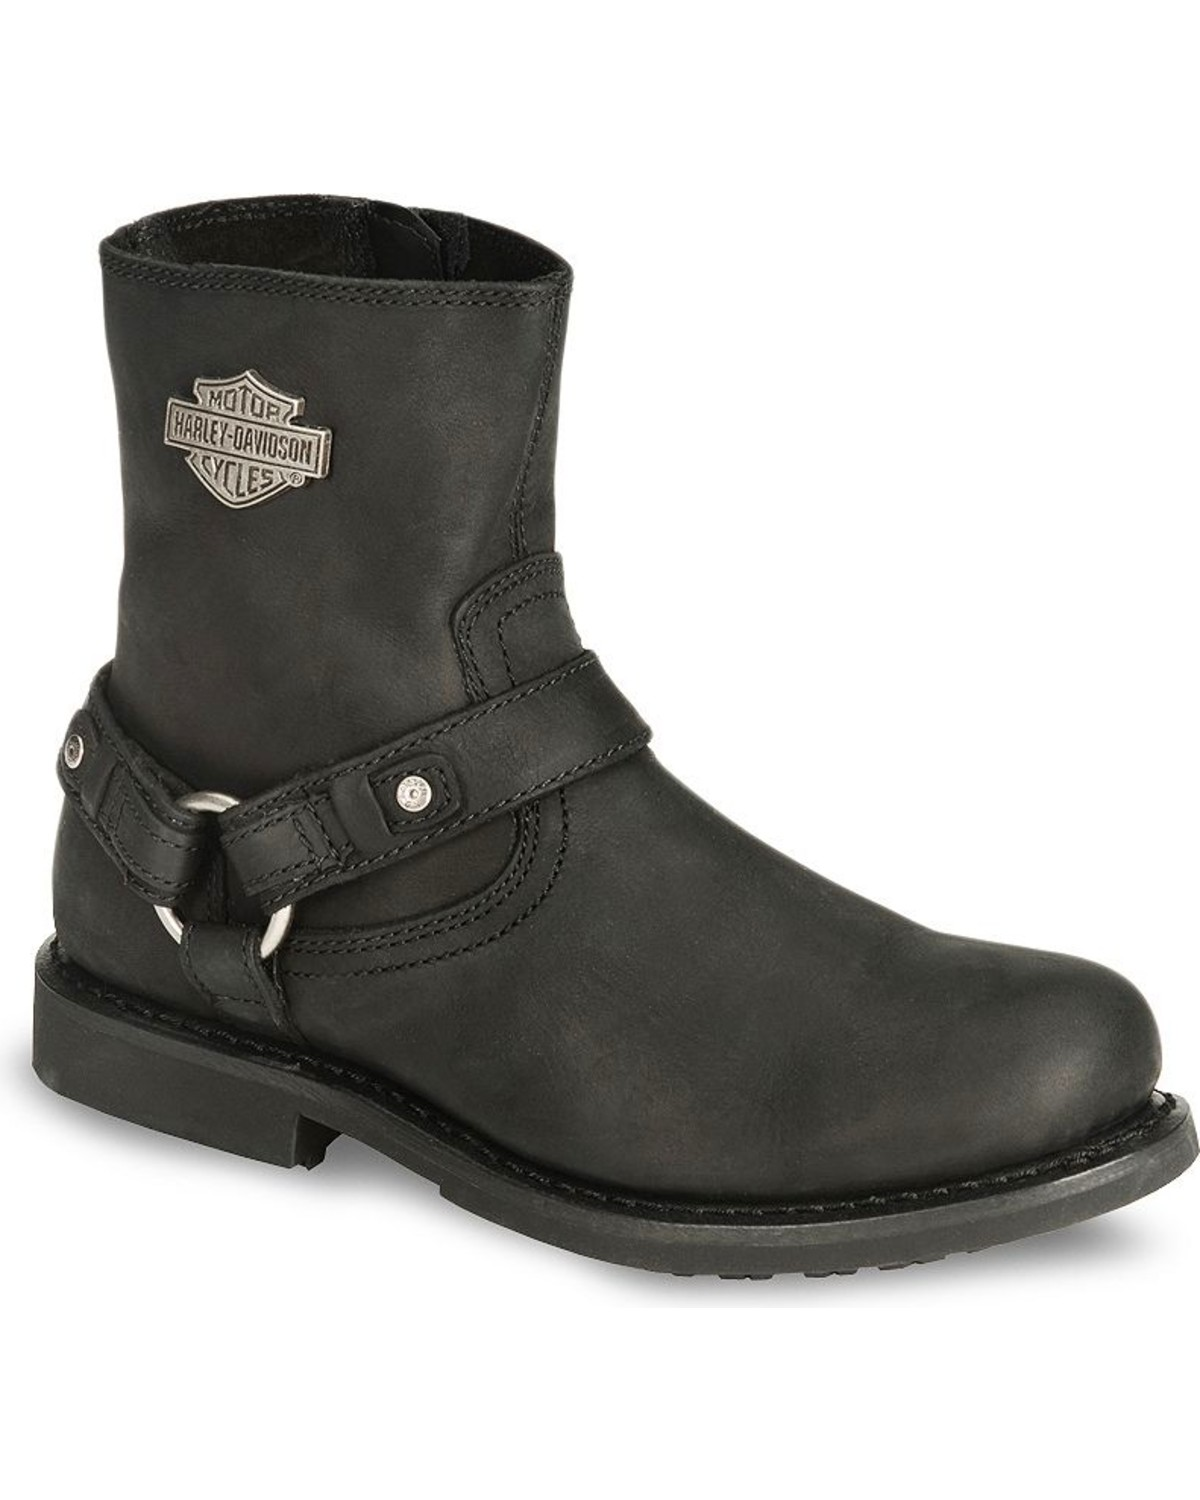 Harley Davidson Ranger Scout Pull-On Harness Boots | Sheplers